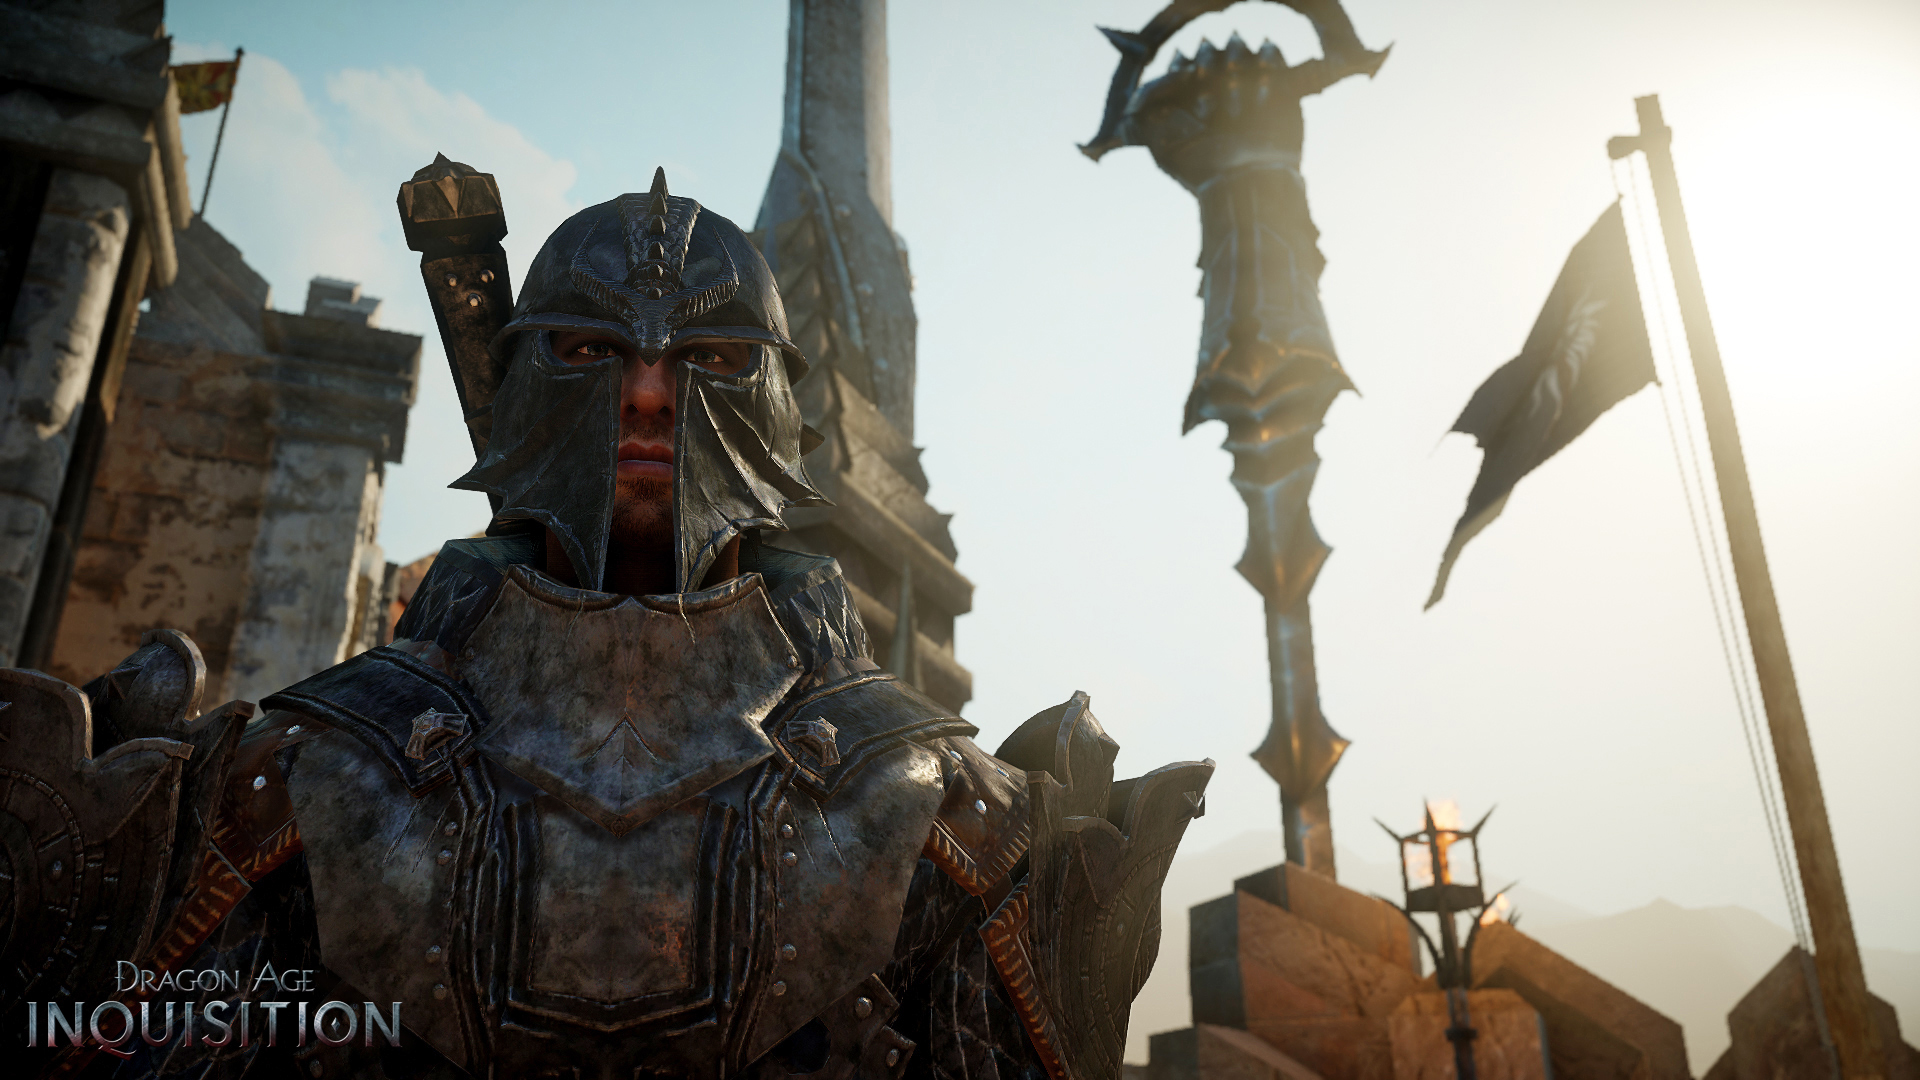 Dragon age inquisition has playable qunari tactical view vg247